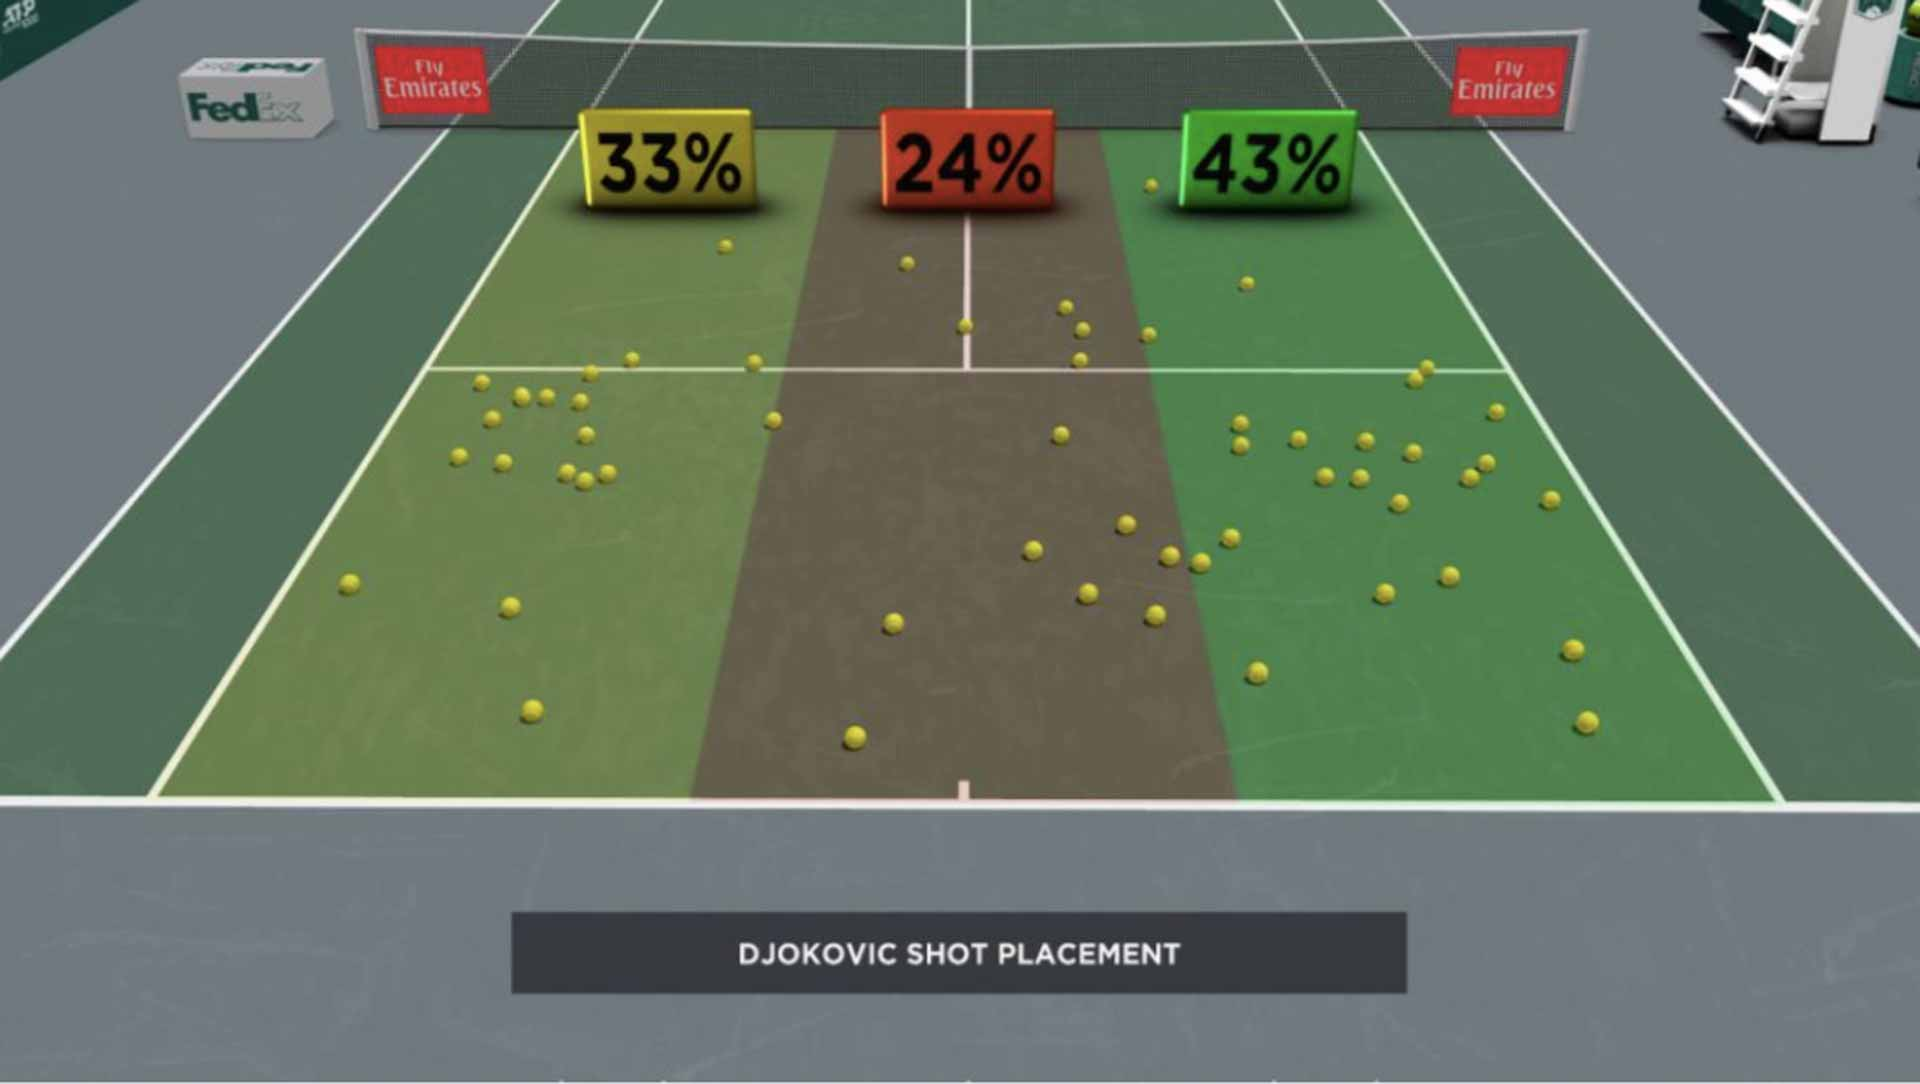 Djokovic Shot Placement